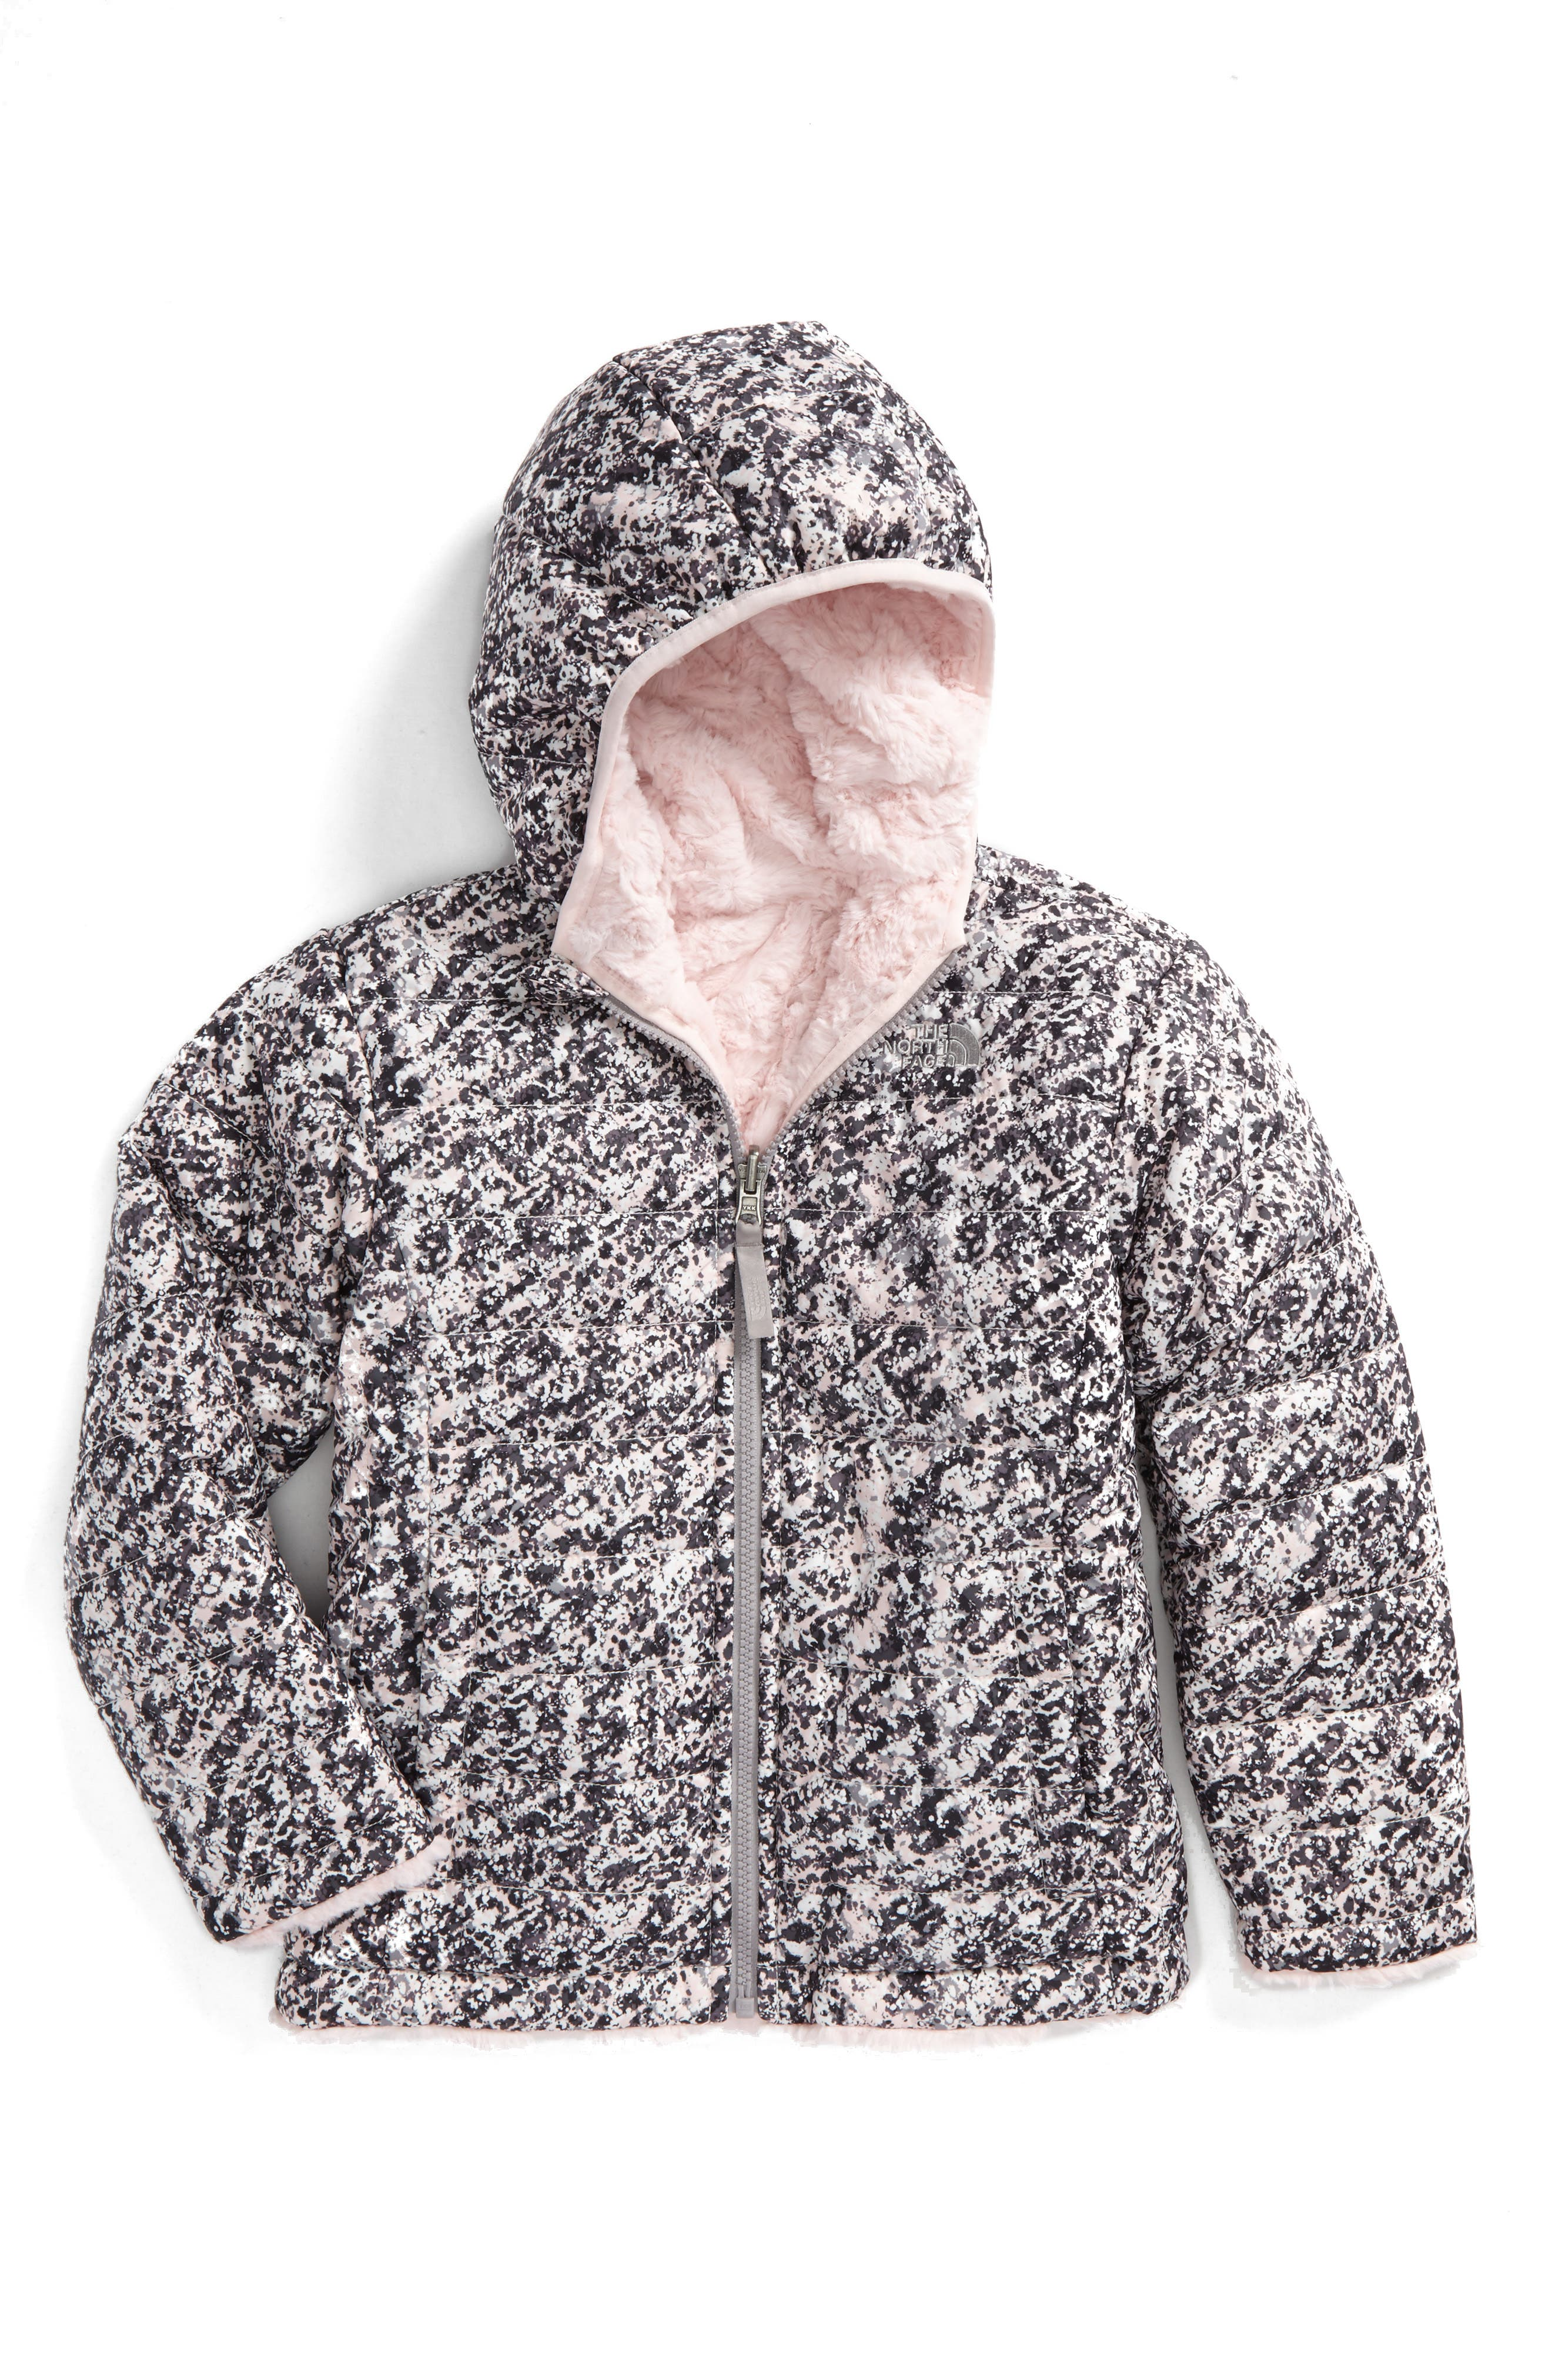 Mossbud Swirl Reversible Water Repellent Jacket,                             Main thumbnail 1, color,                             Purdy Pink Sponge Print